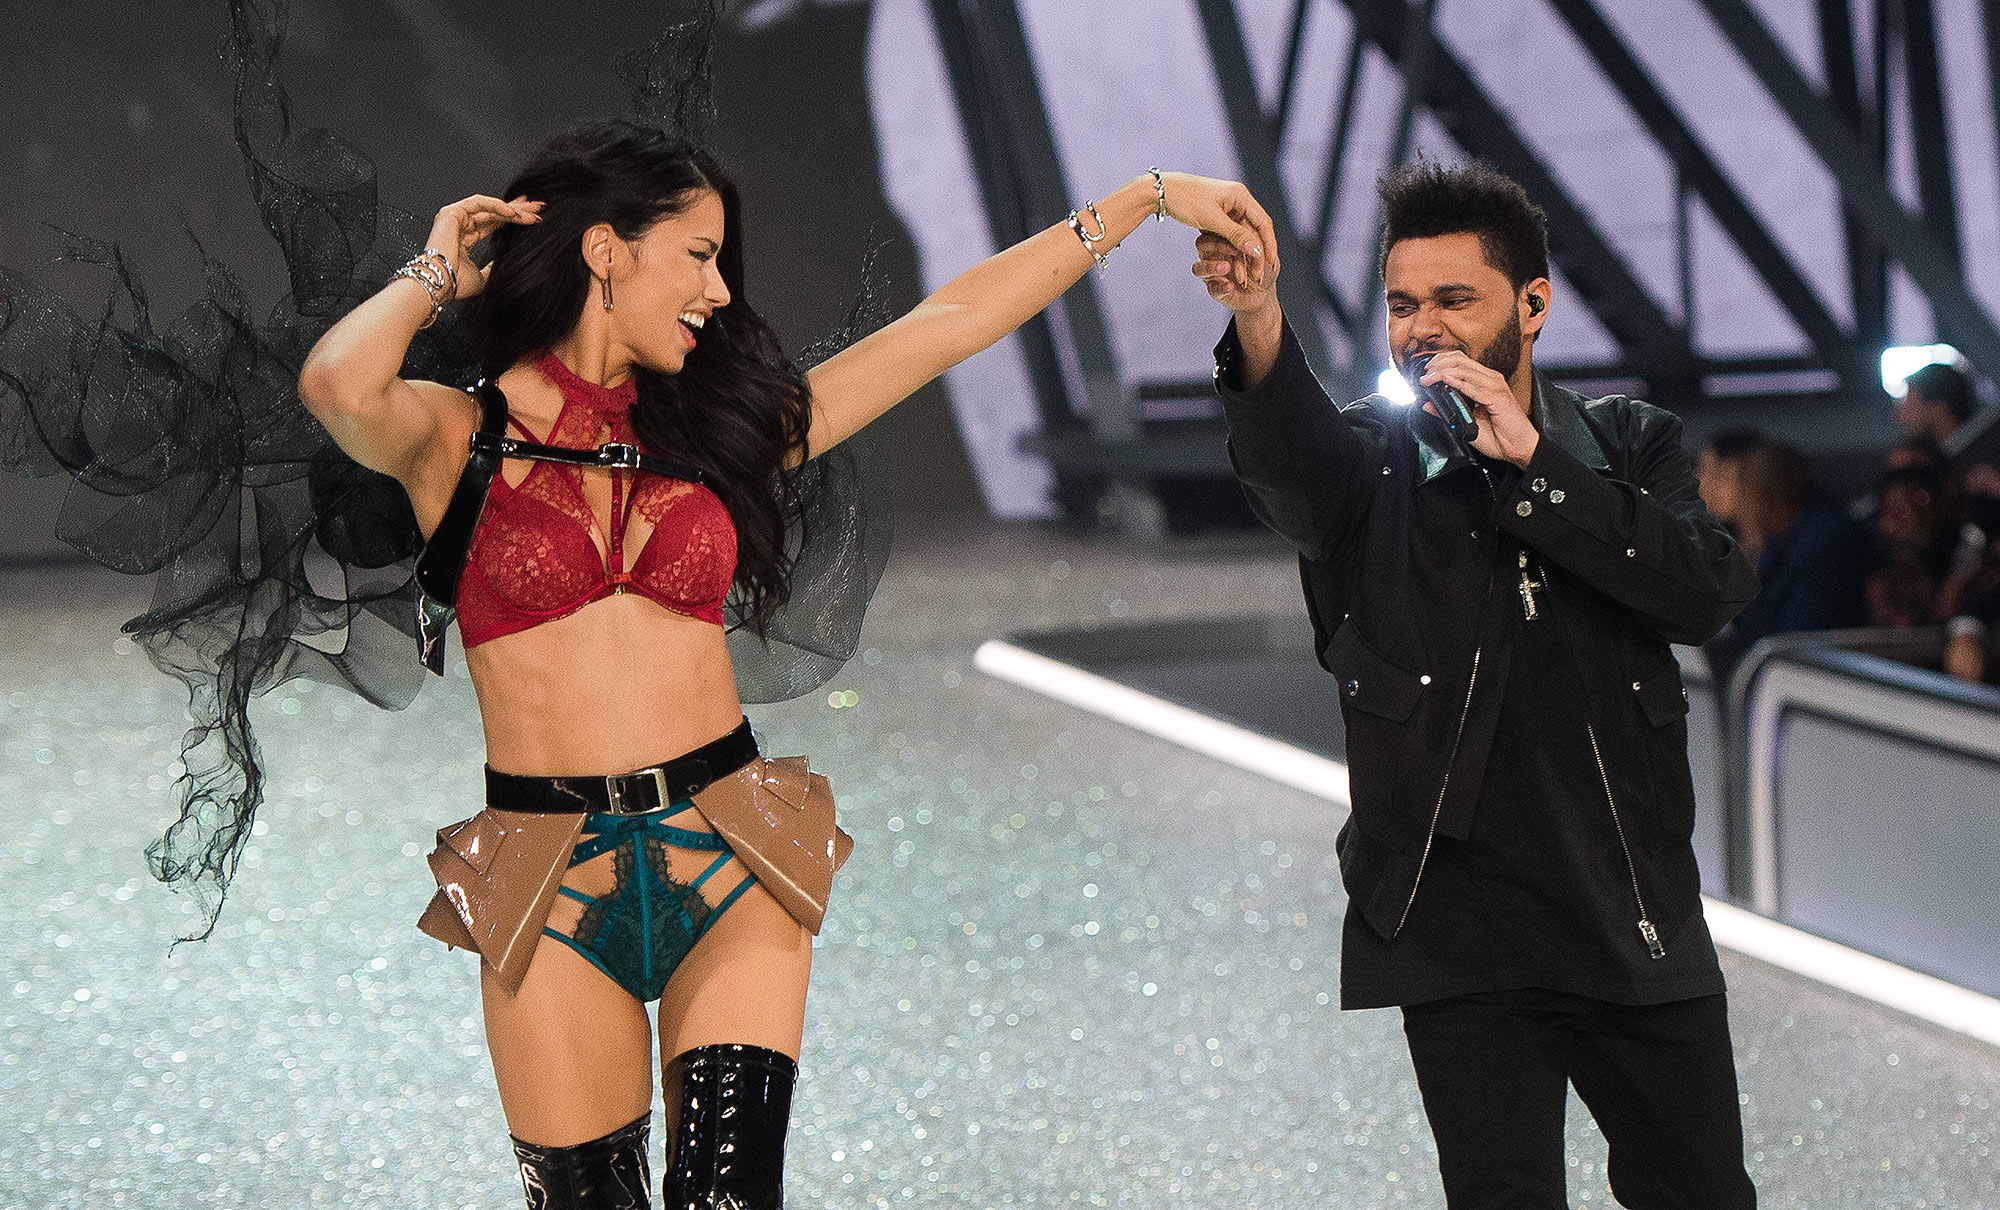 PARIS, FRANCE - NOVEMBER 30: Adriana Lima walks the runway as The Weeknd peforms during the annual Victoria's Secret fashion show at Grand Palais on November 30, 2016 in Paris, France. (Photo by Samir Hussein/Samir Hussein/WireImage)